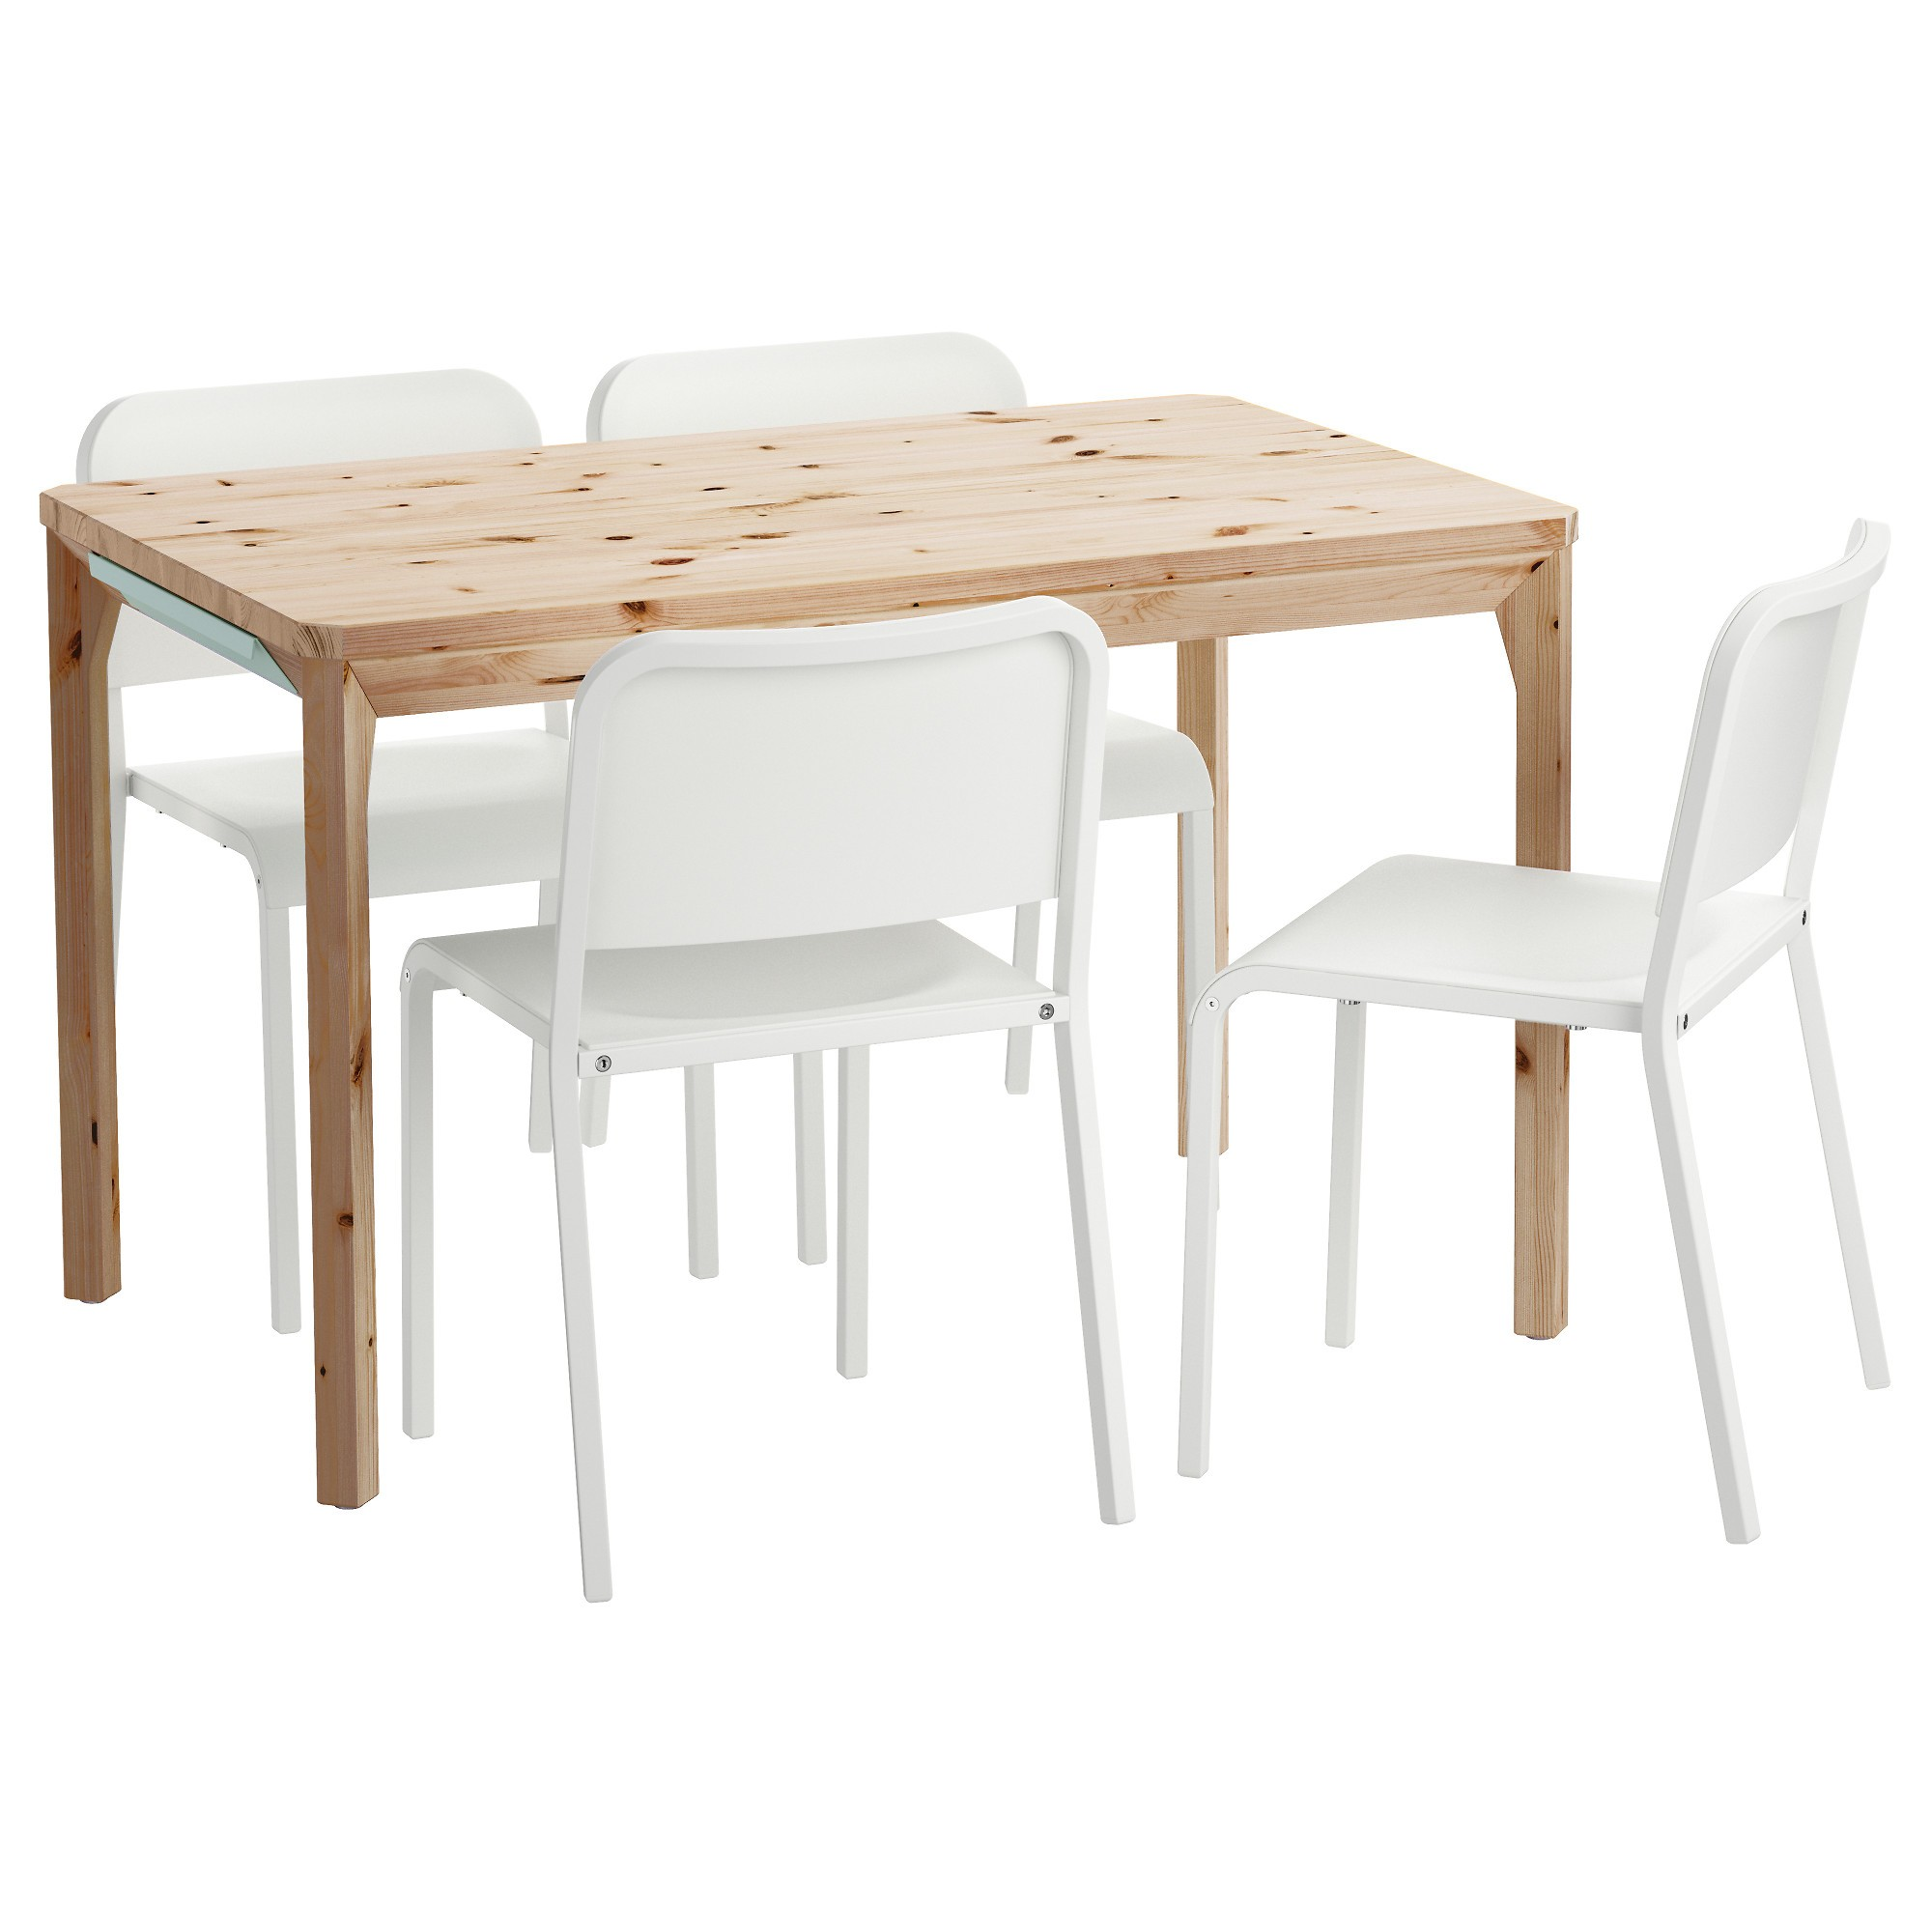 Table pliante avec chaises ikea chaise id es de for Table avec chaise